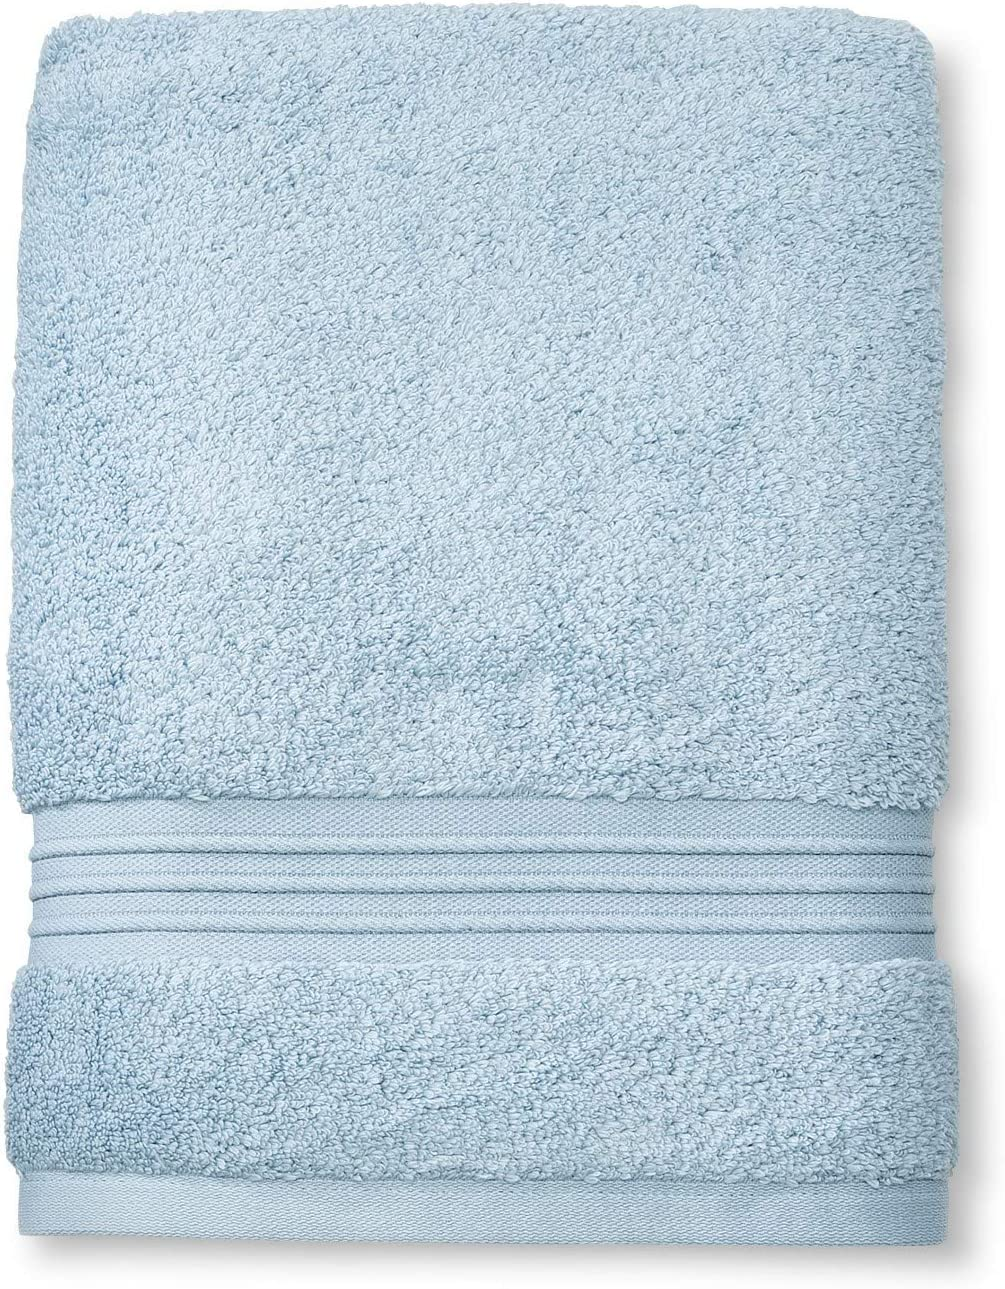 Fieldcrest Spa Collection Glowing Blue Bath Towel